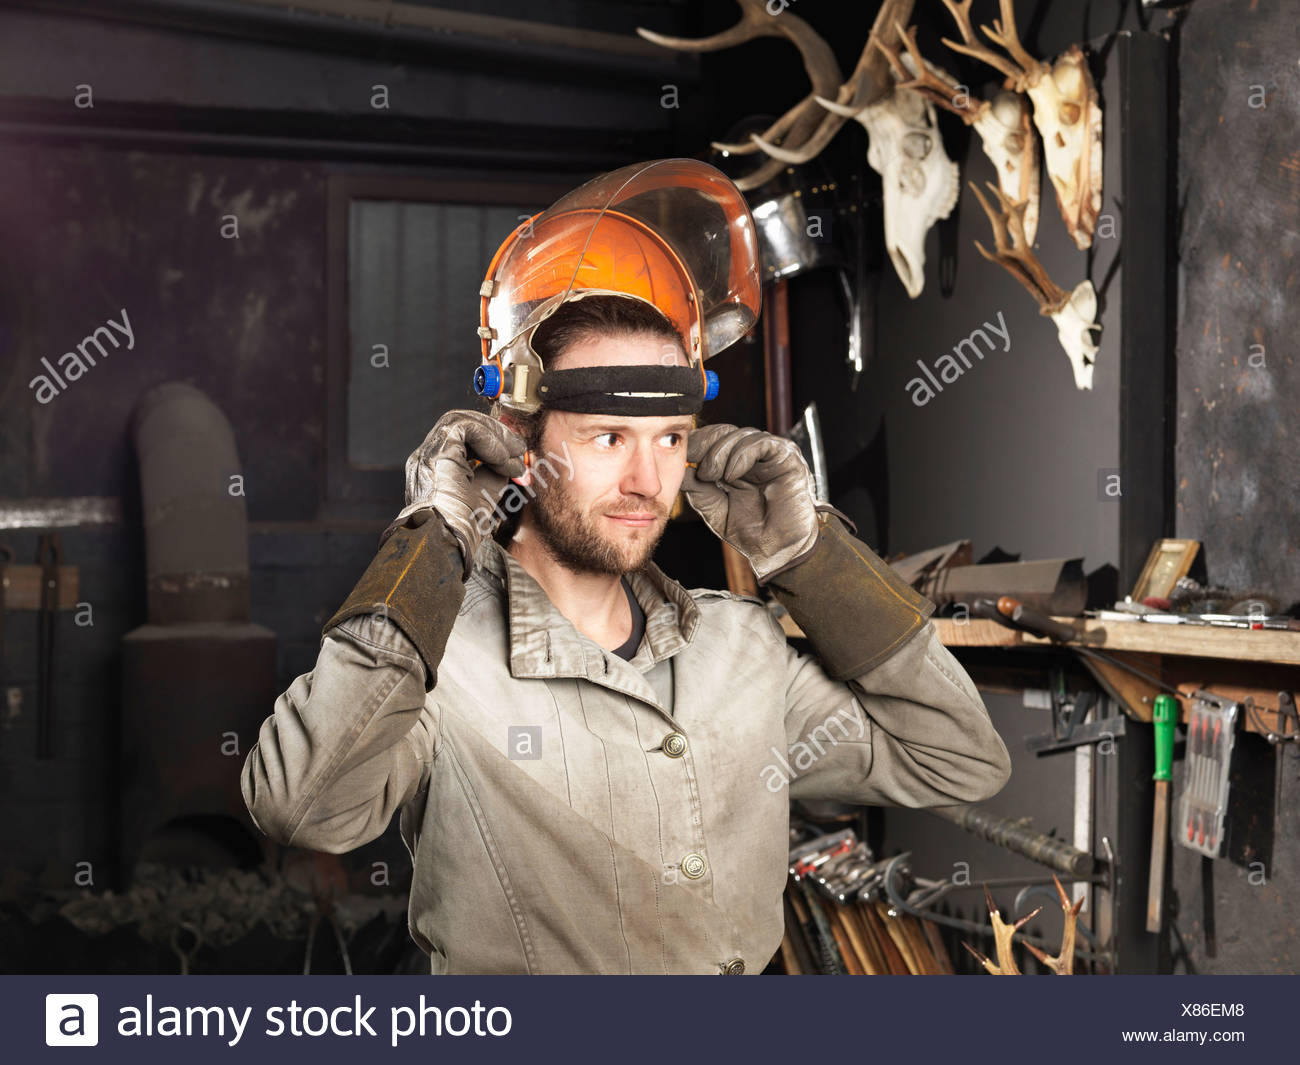 Blacksmith putting on a visor in workshop - Stock Image